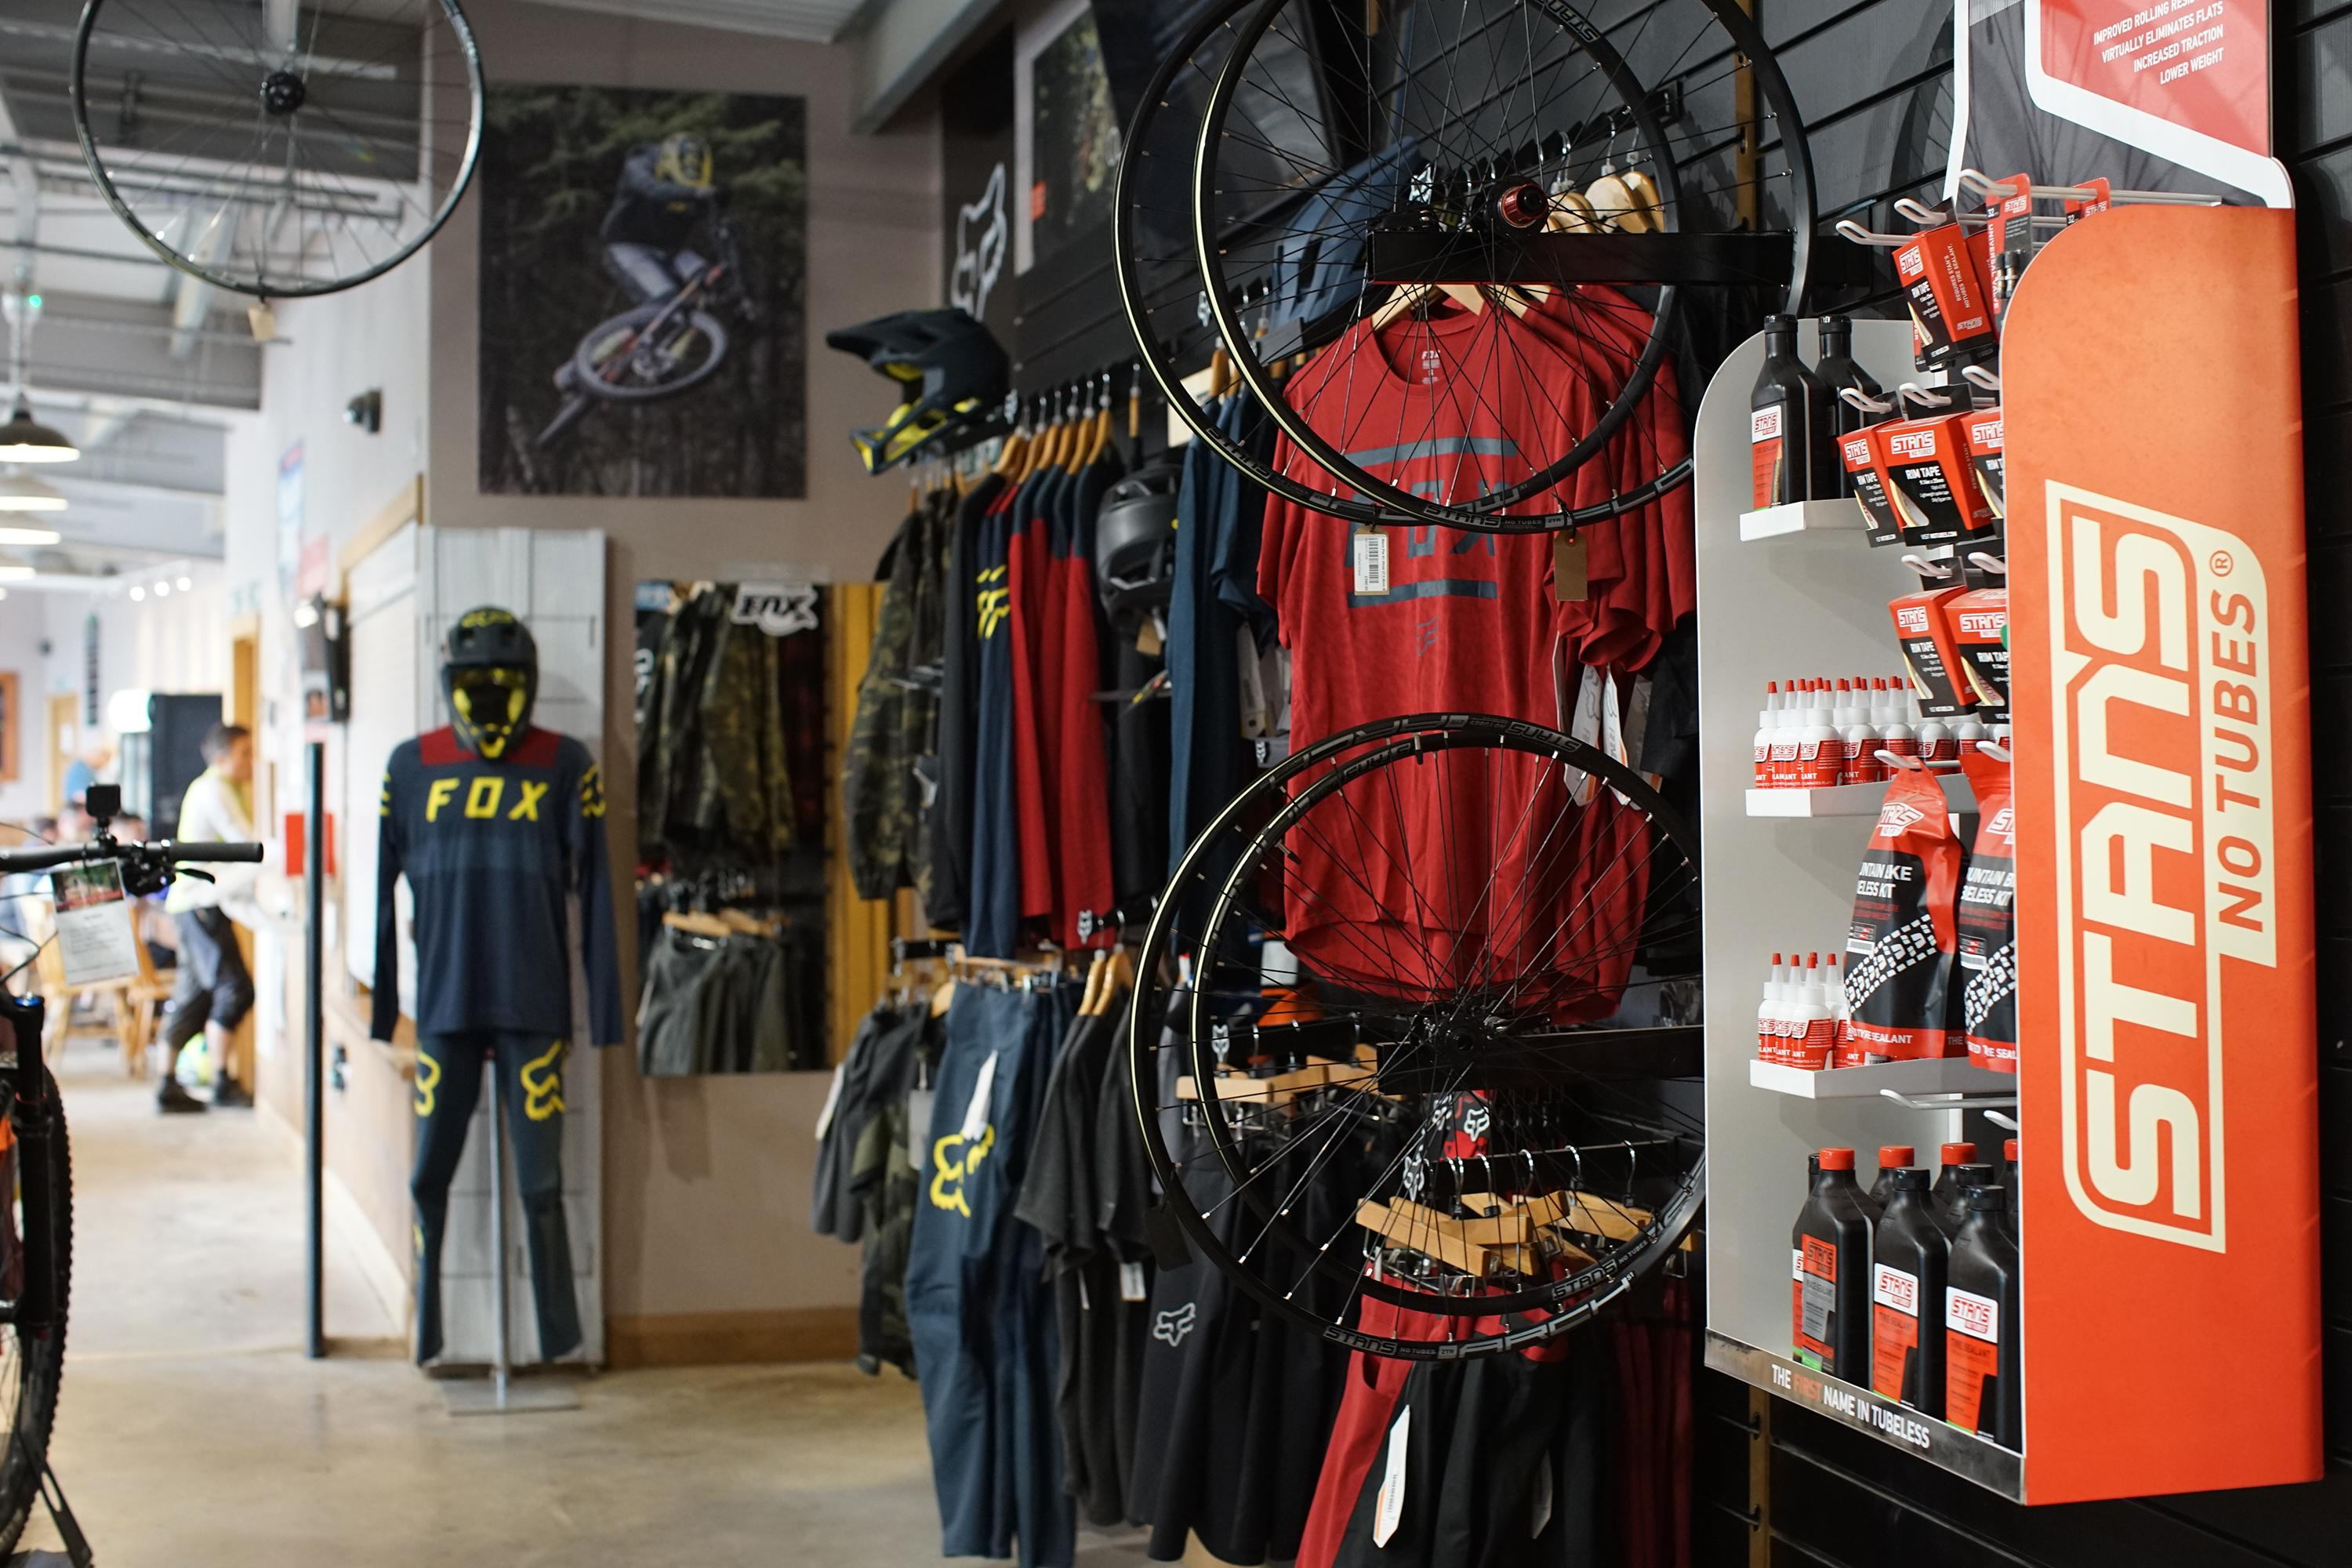 Bikepark Wales On Site Shop Wiring Your We Are Here To Offer Friendly And Knowledgeable Advice Whether You Purchasing An Inner Tube Or Looking Custom Build Dream Bike